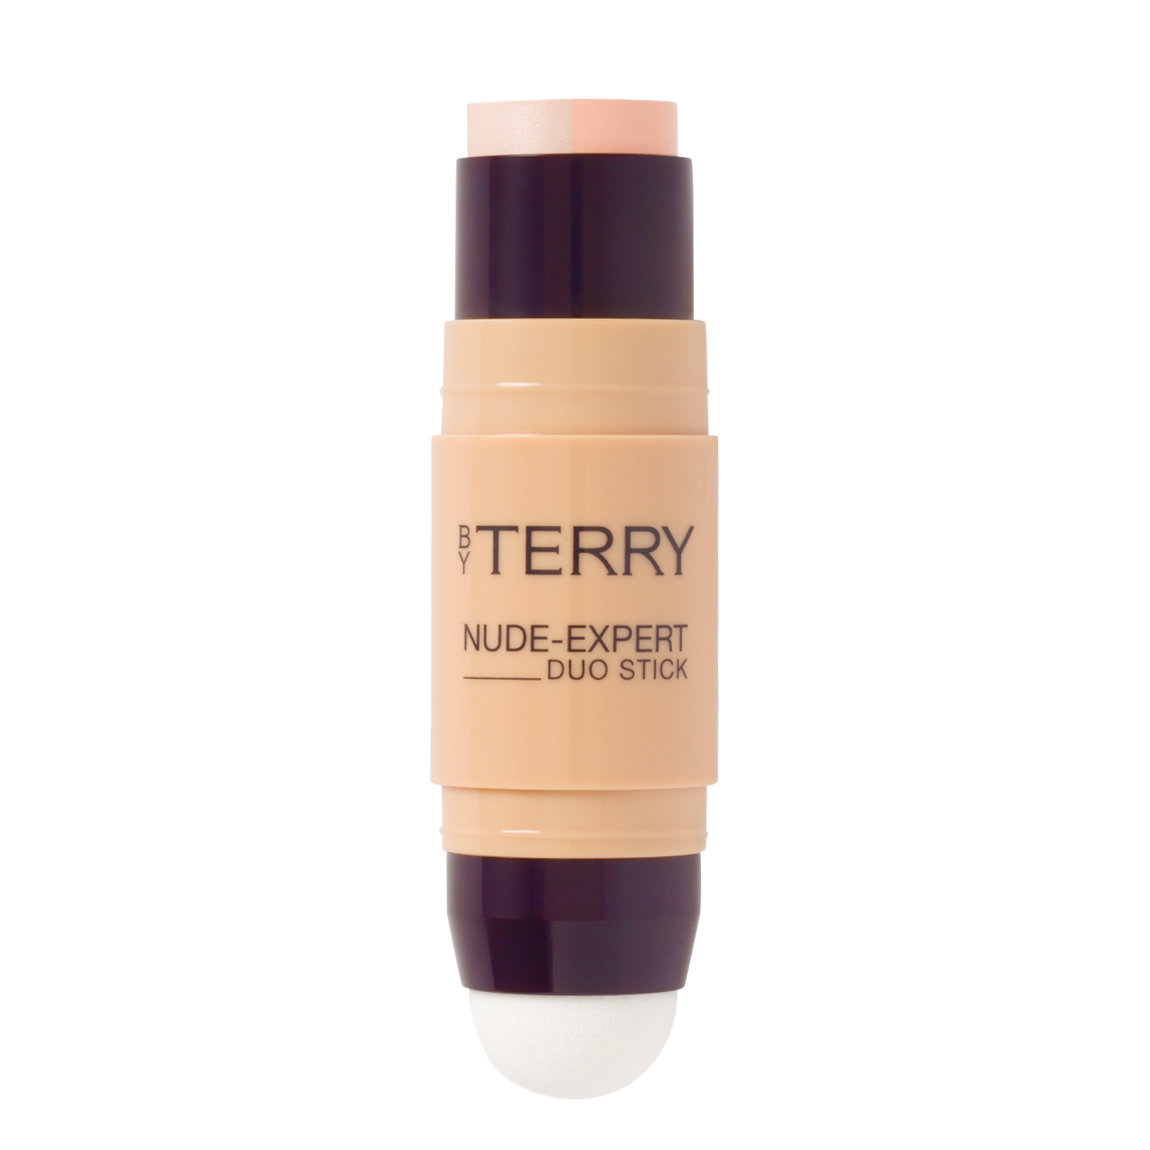 BY TERRY Nude-Expert Duo Stick 1 Fair Beige